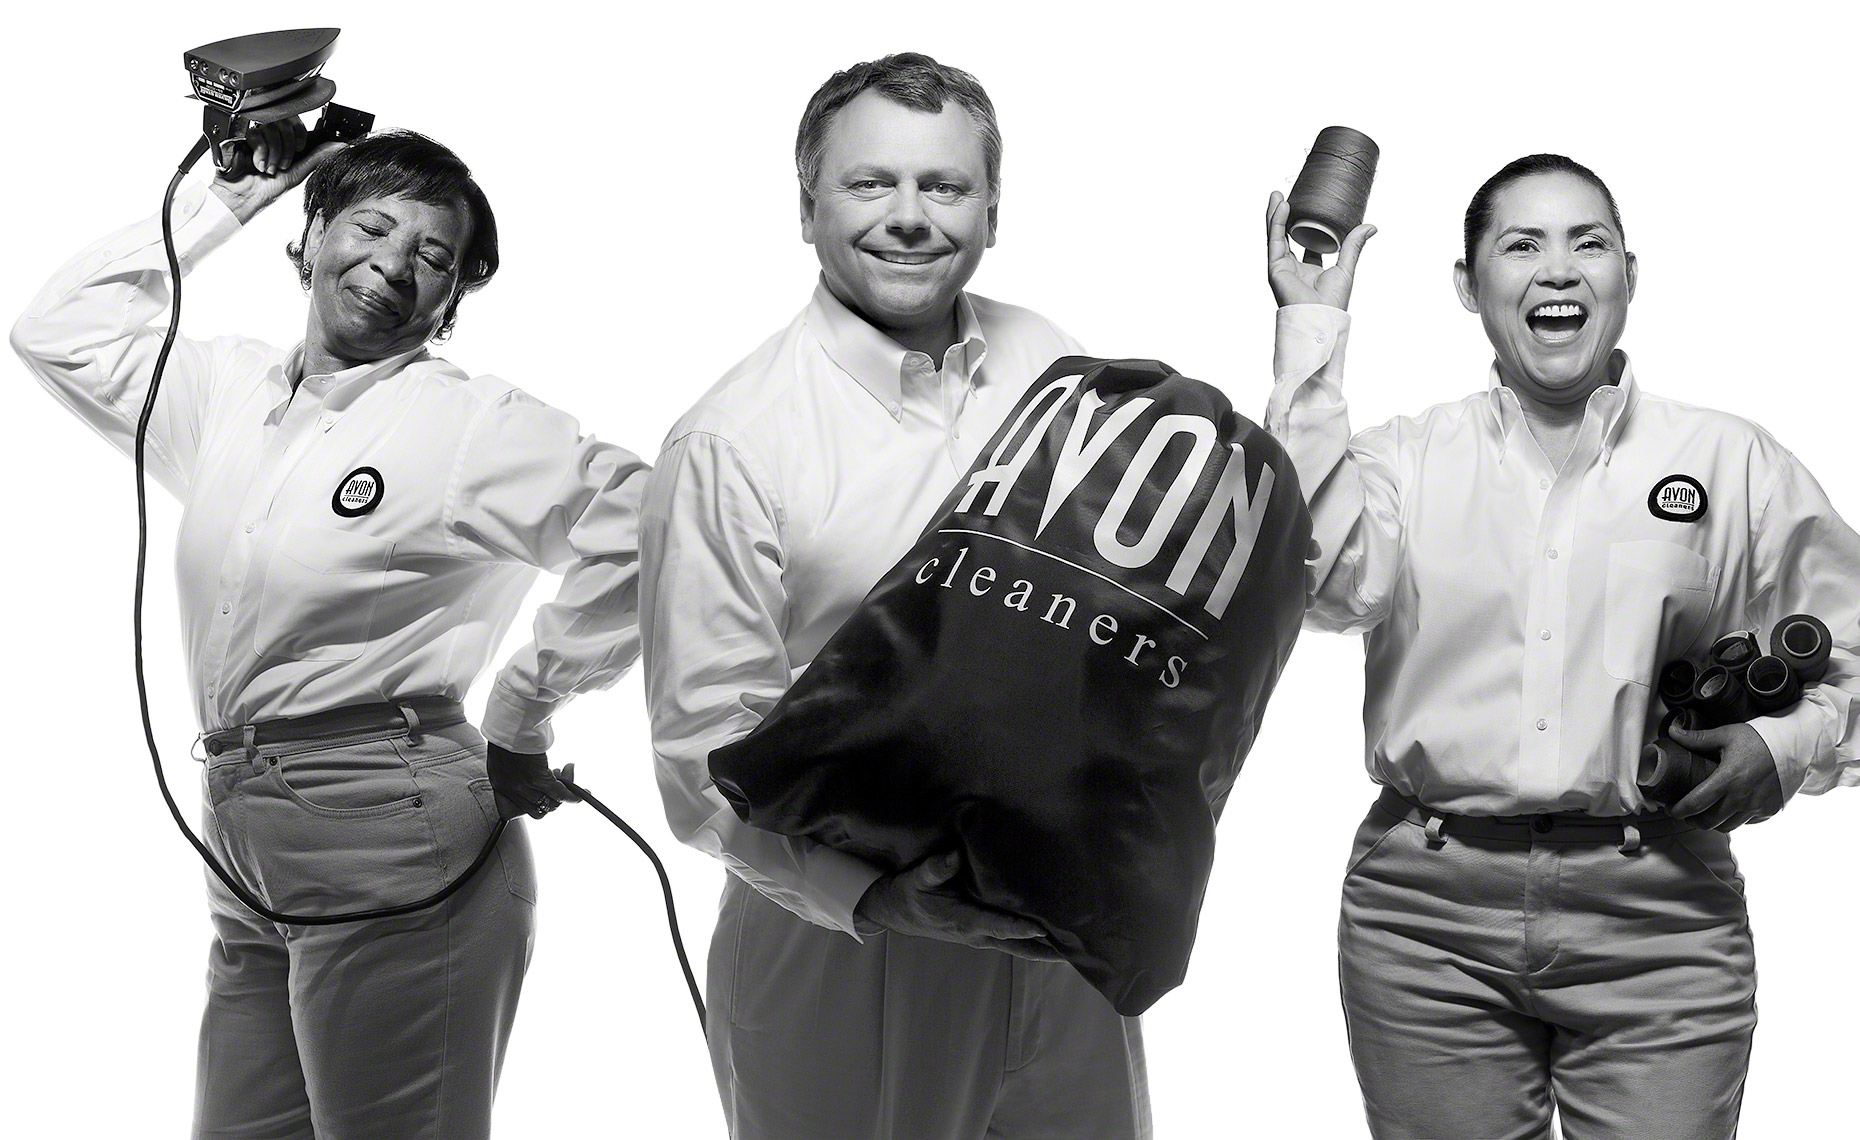 Black and white group business portrait for Avon Cleaners in Dallas, Texas by photographer John Derryberry Photography